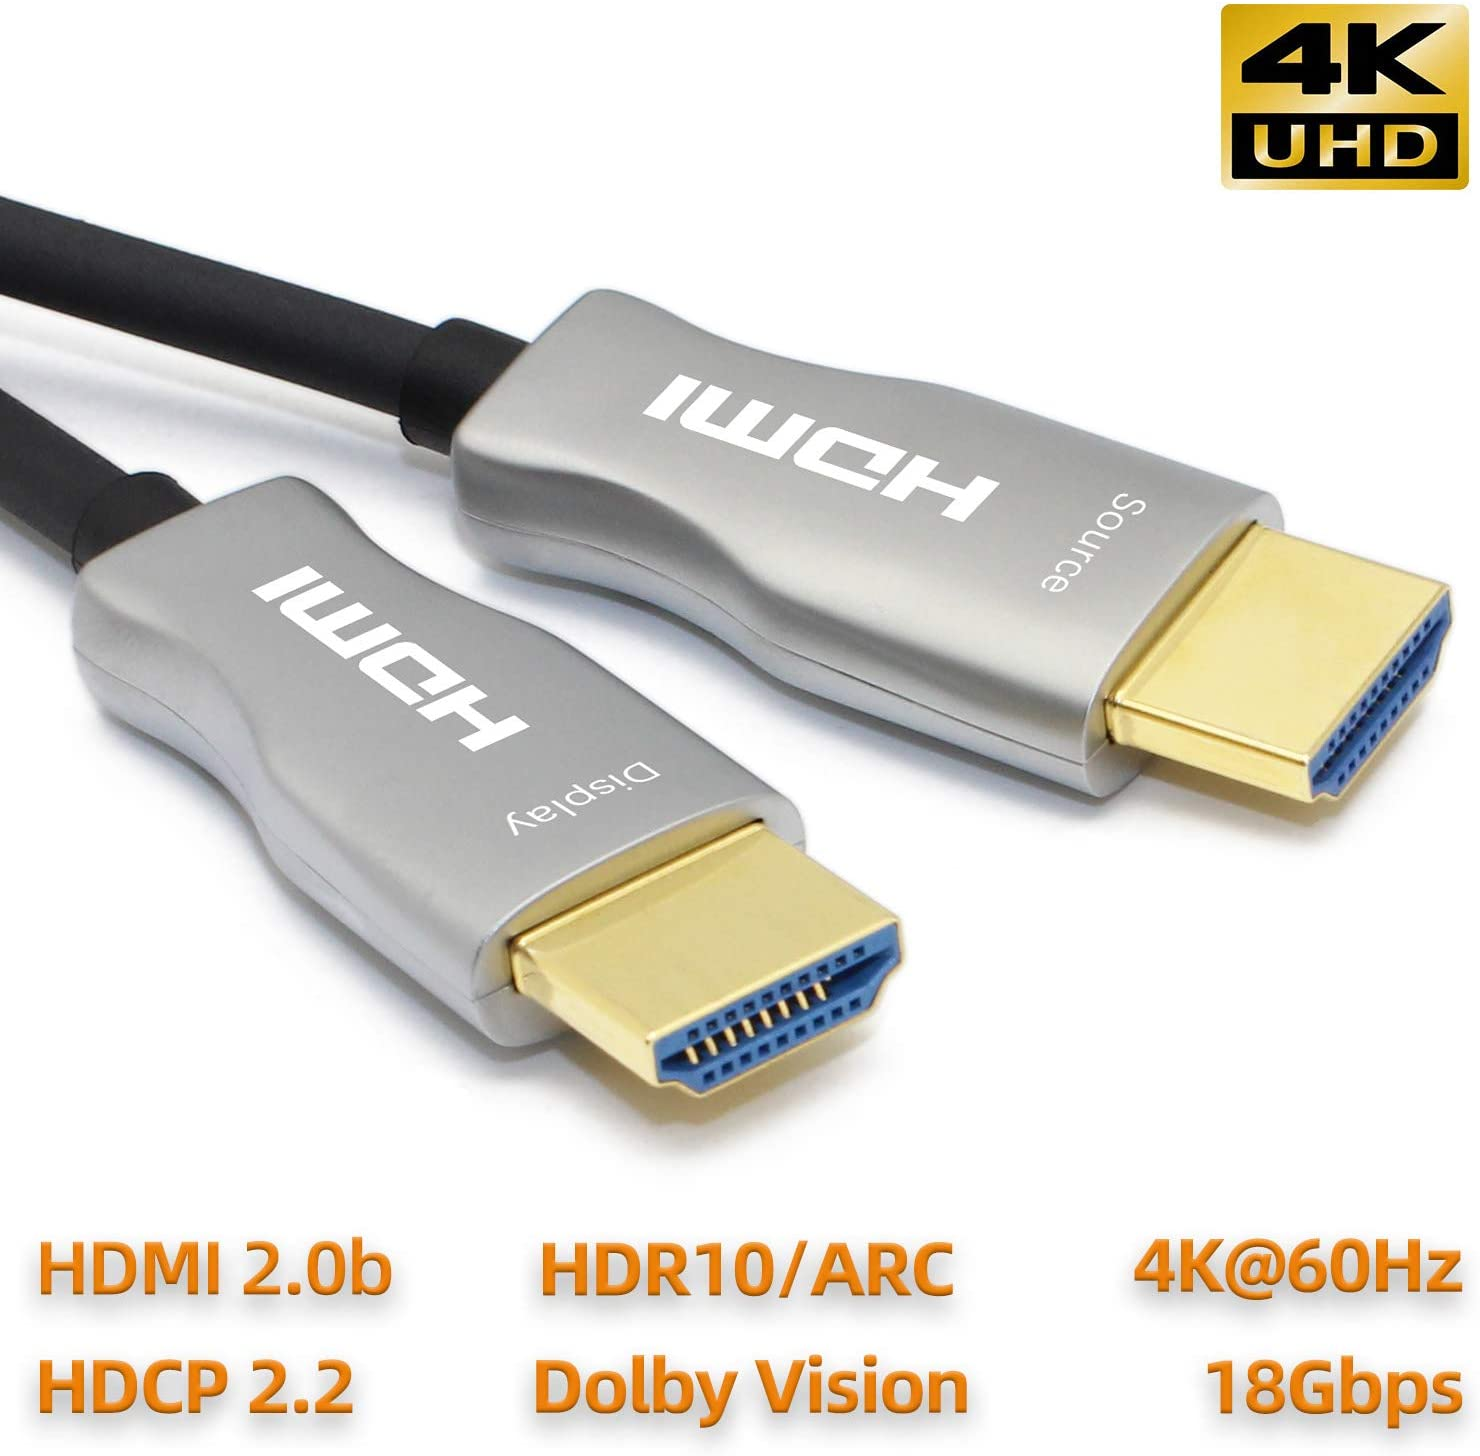 MavisLink Fiber Optic HDMI Cable 35ft 4K 60Hz HDMI 2.0 Cable 18Gbps HDMI Cord Support ARC HDR HDCP2.2 3D Dolby Vision for Blu-ray/TV Box/HDTV / 4K Projector/Home Theater